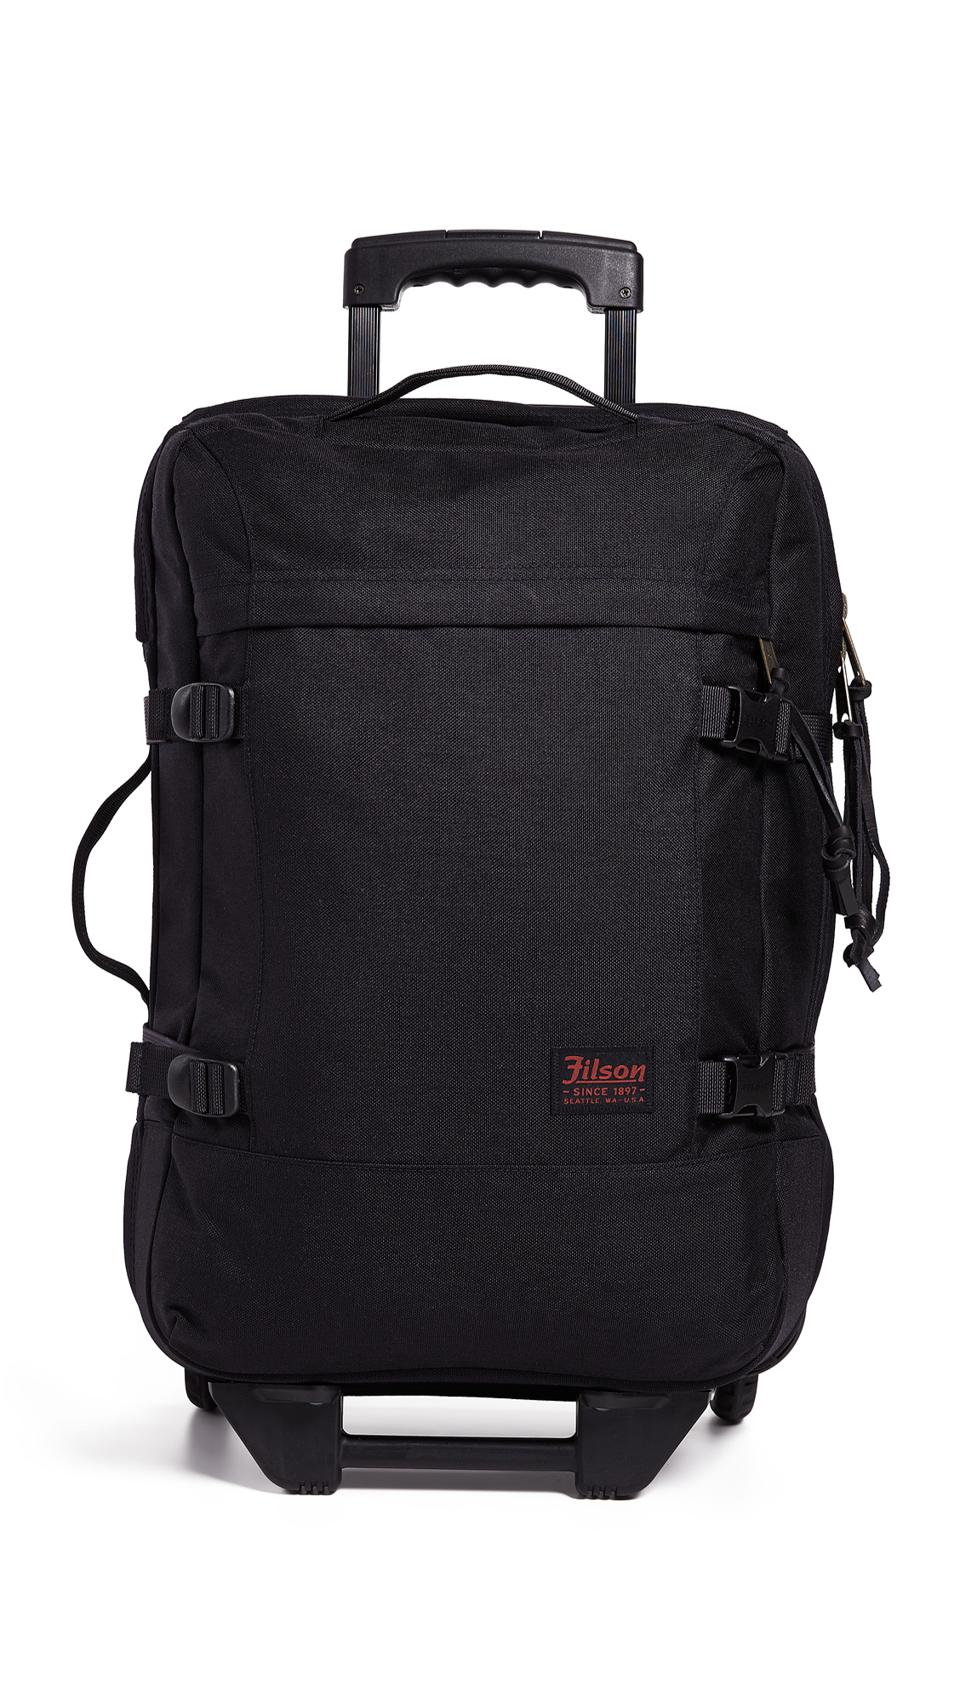 Filson Dryden Two-Wheel Carry-On Suitcase